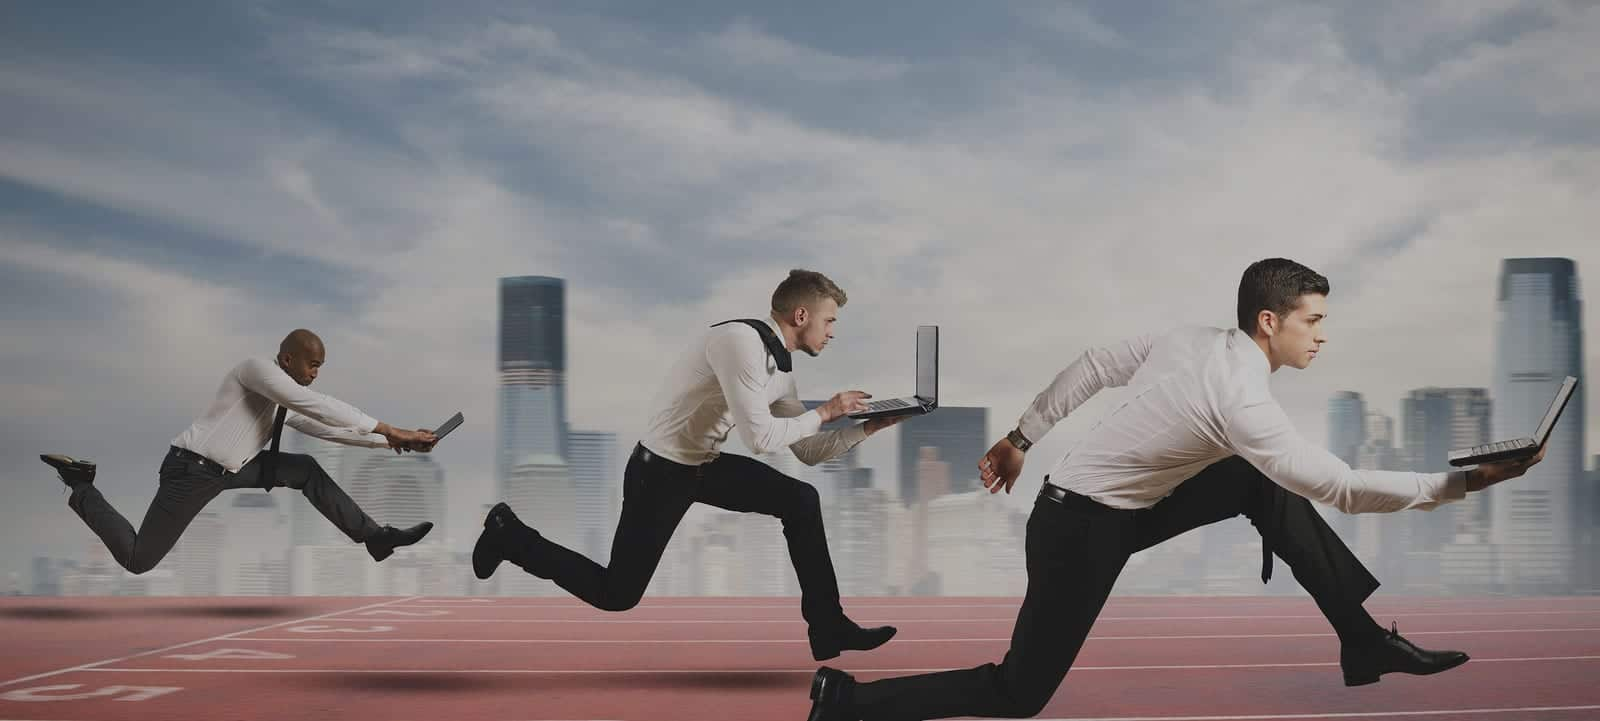 Stay-Ahead-Of-Competitors 5 Reasons Why You Need To Work Harder (Even When You Are At The Top) Blog Business Leadership